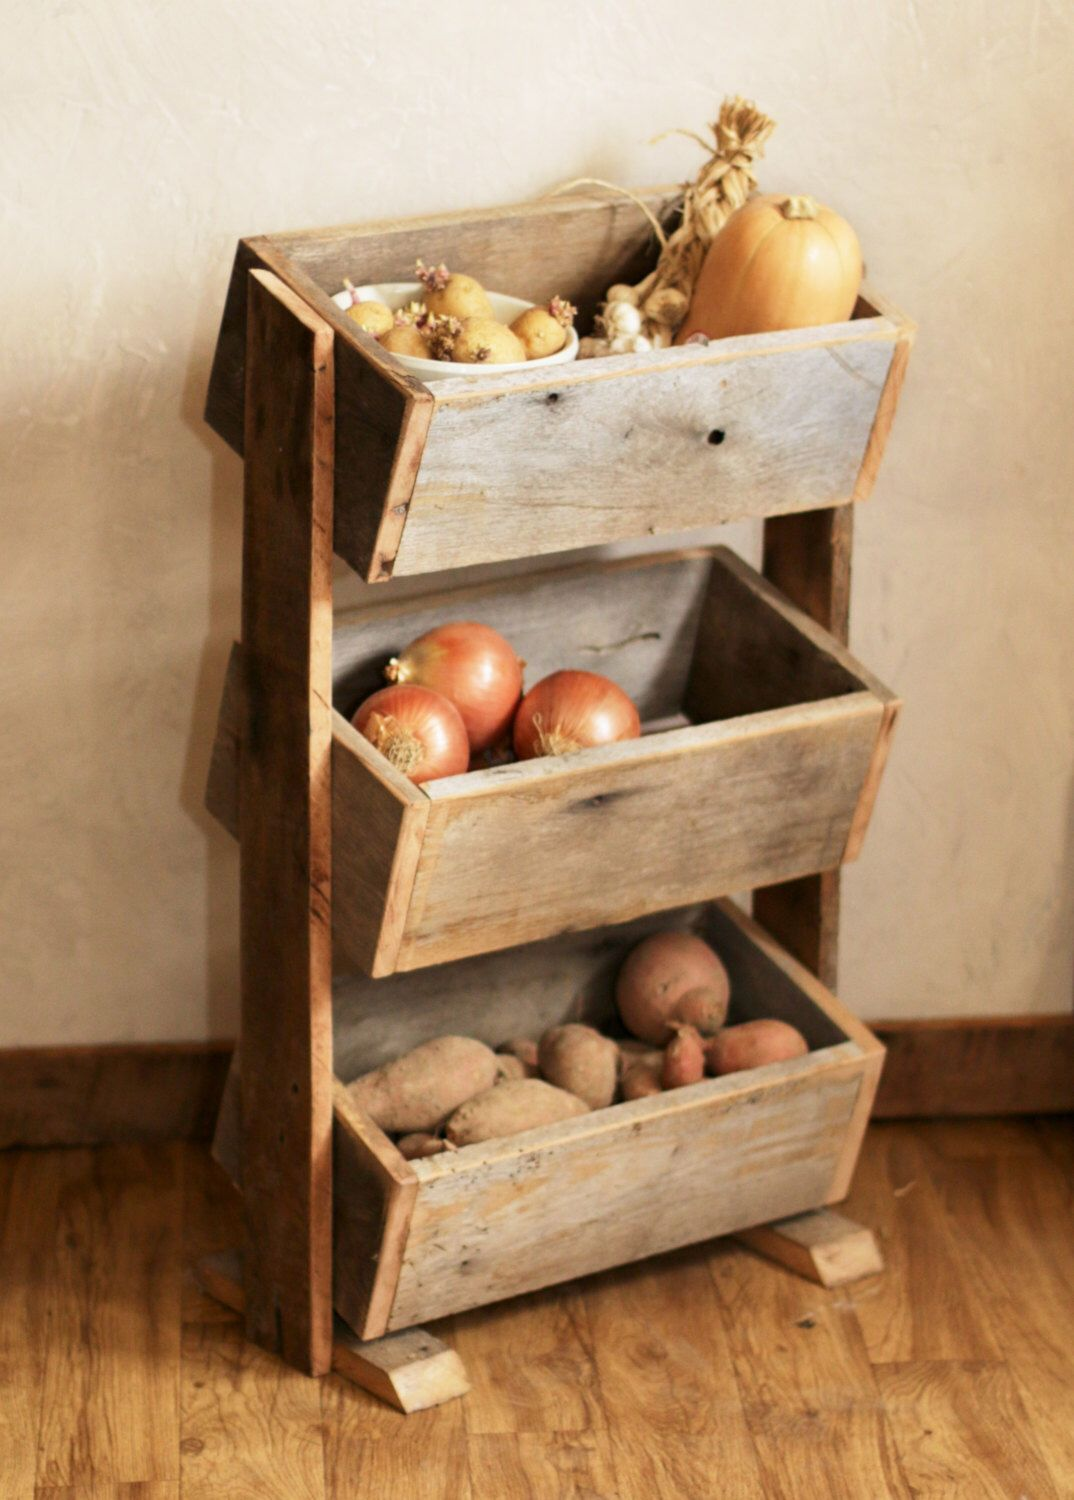 handmade wood decor fruit and veggie holder woodworking home Potato Bin - Vegetable Bin - Barn Wood - Rustic Kitchen Decor - Handmade by  GrindstoneDesign